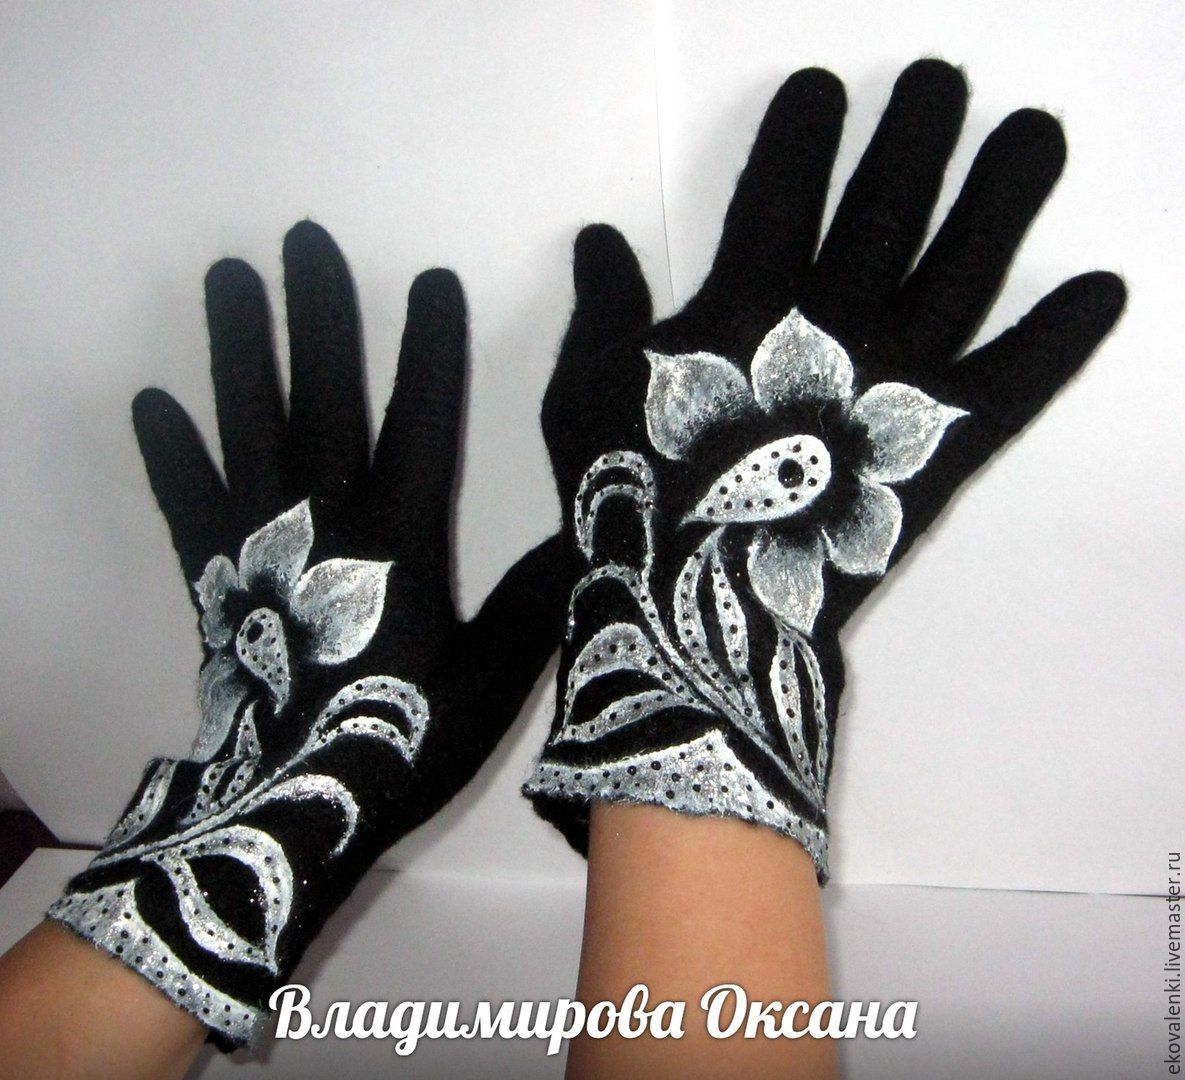 Felted gloves made of natural high quality Merino wool.